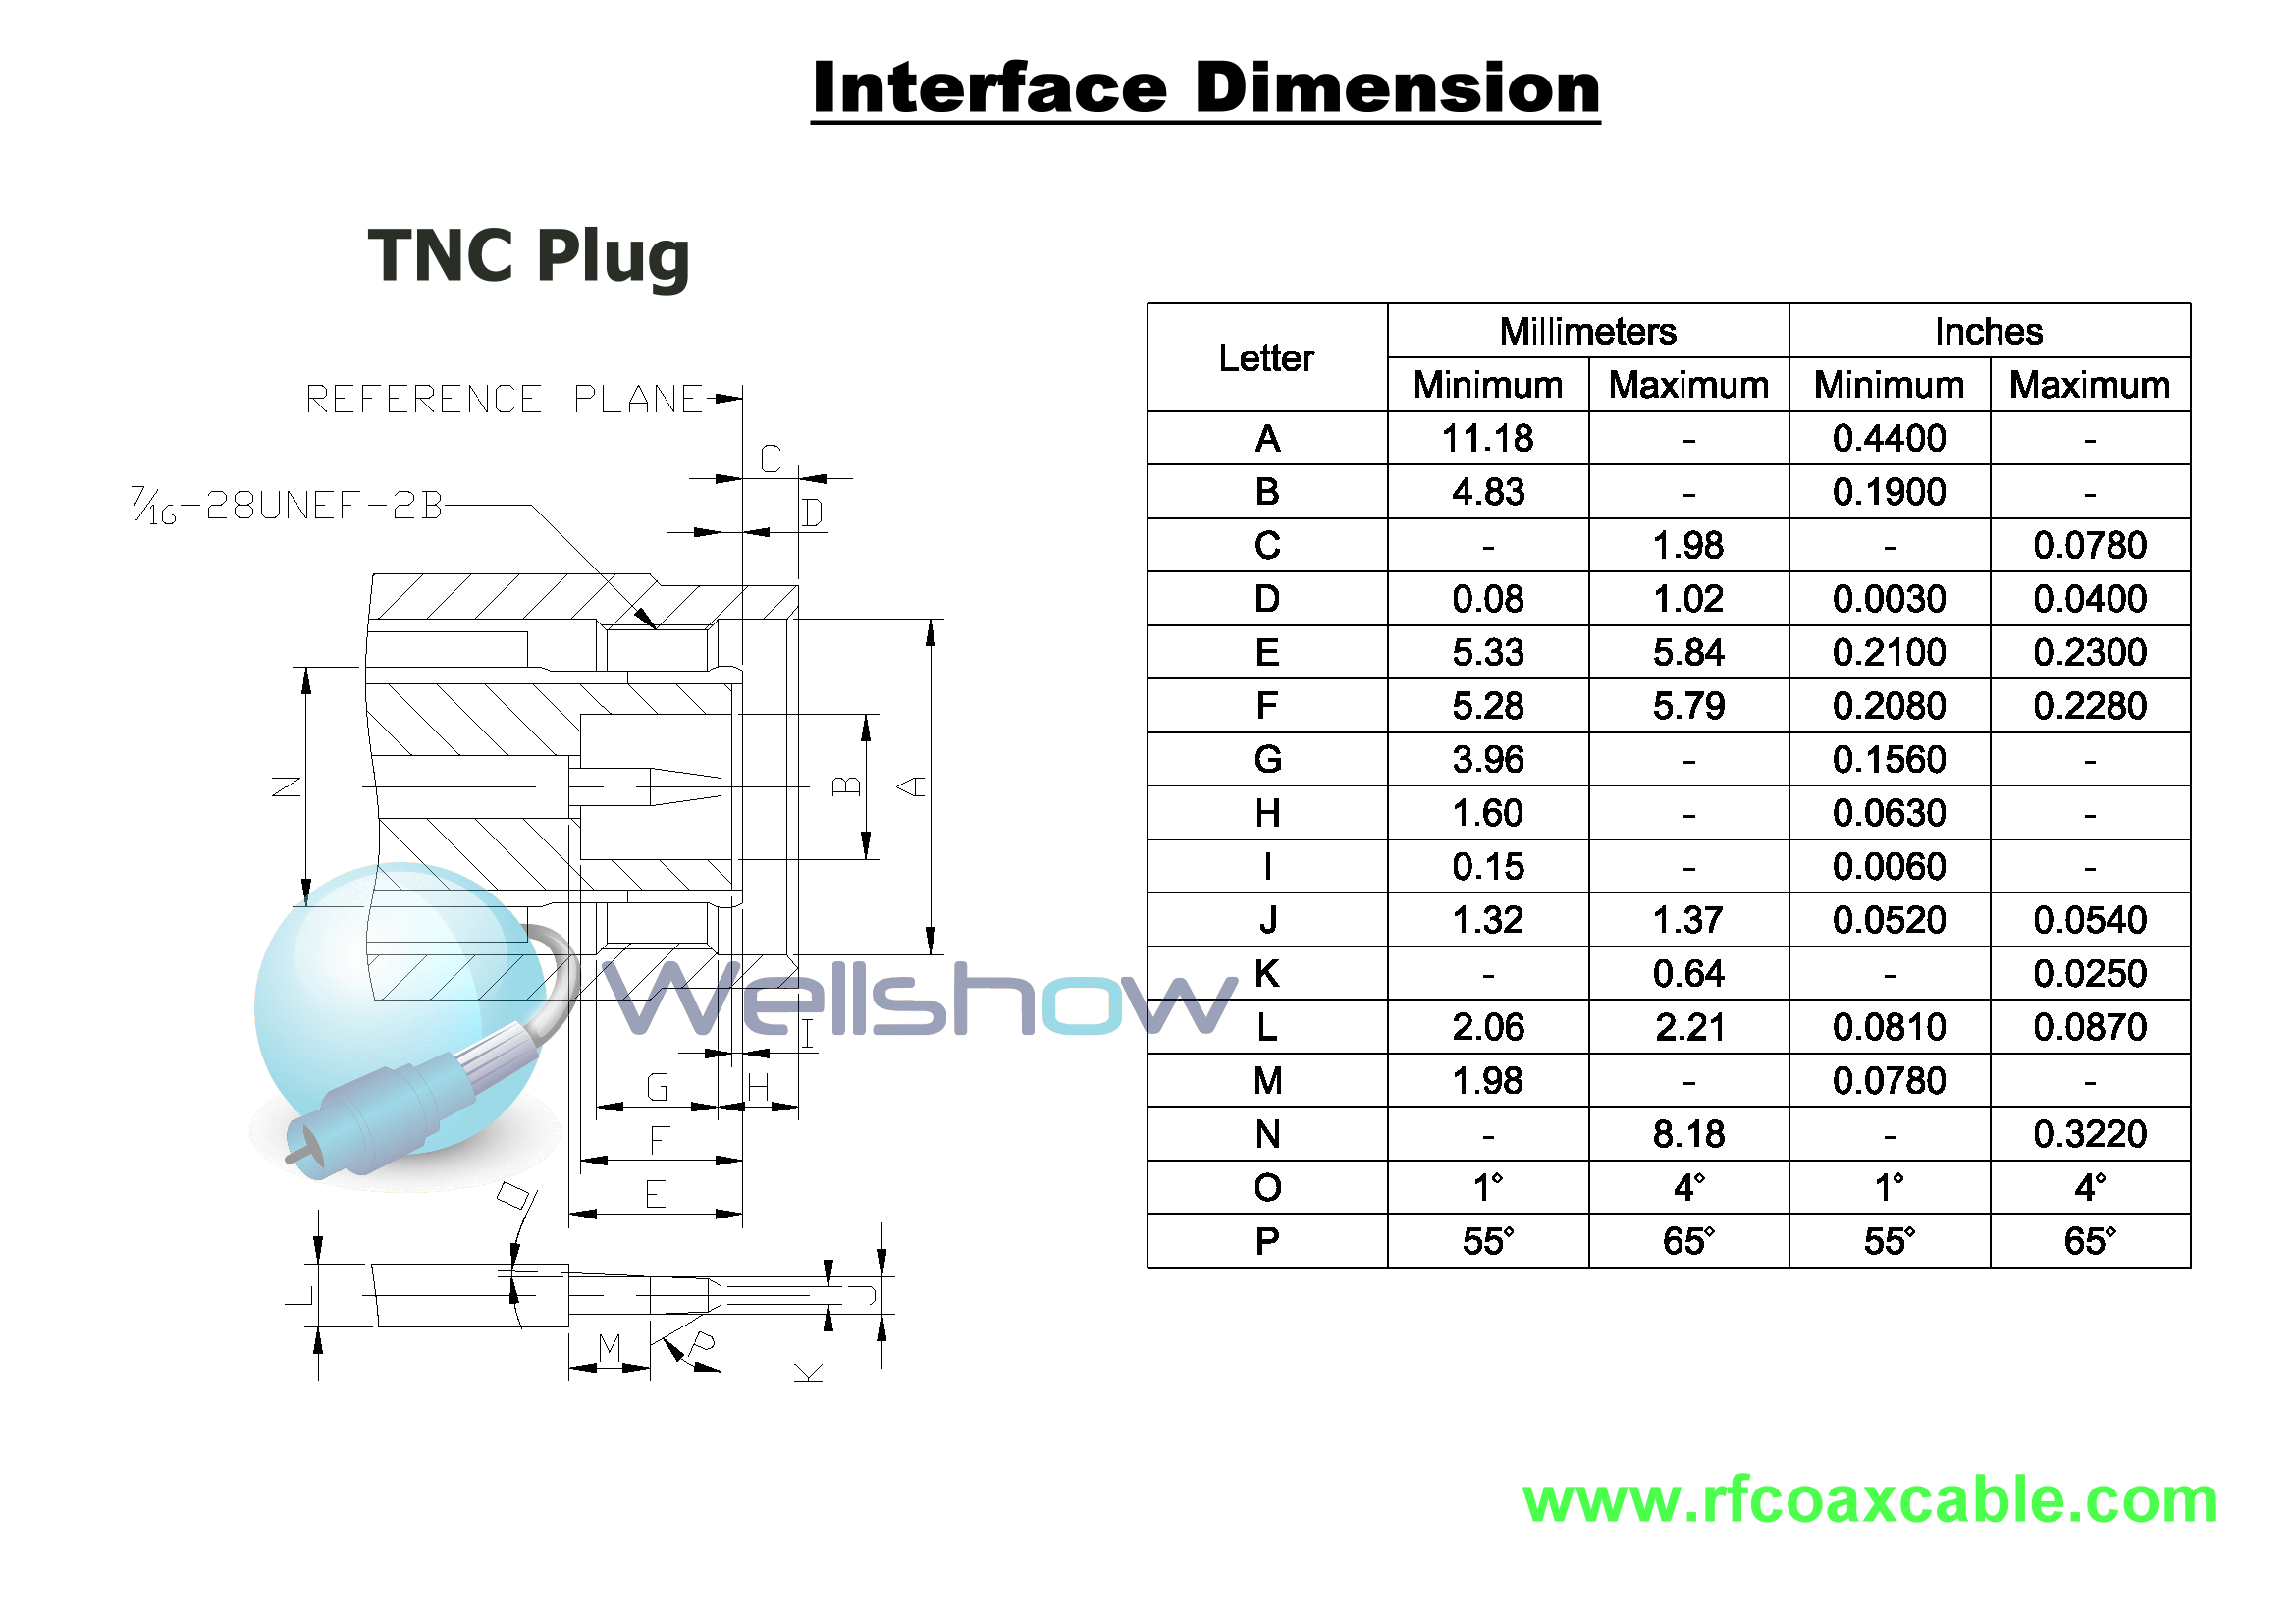 tnc male coaxial connectors  rf connectors  rf cable connectors  coaxial cable connectors  50